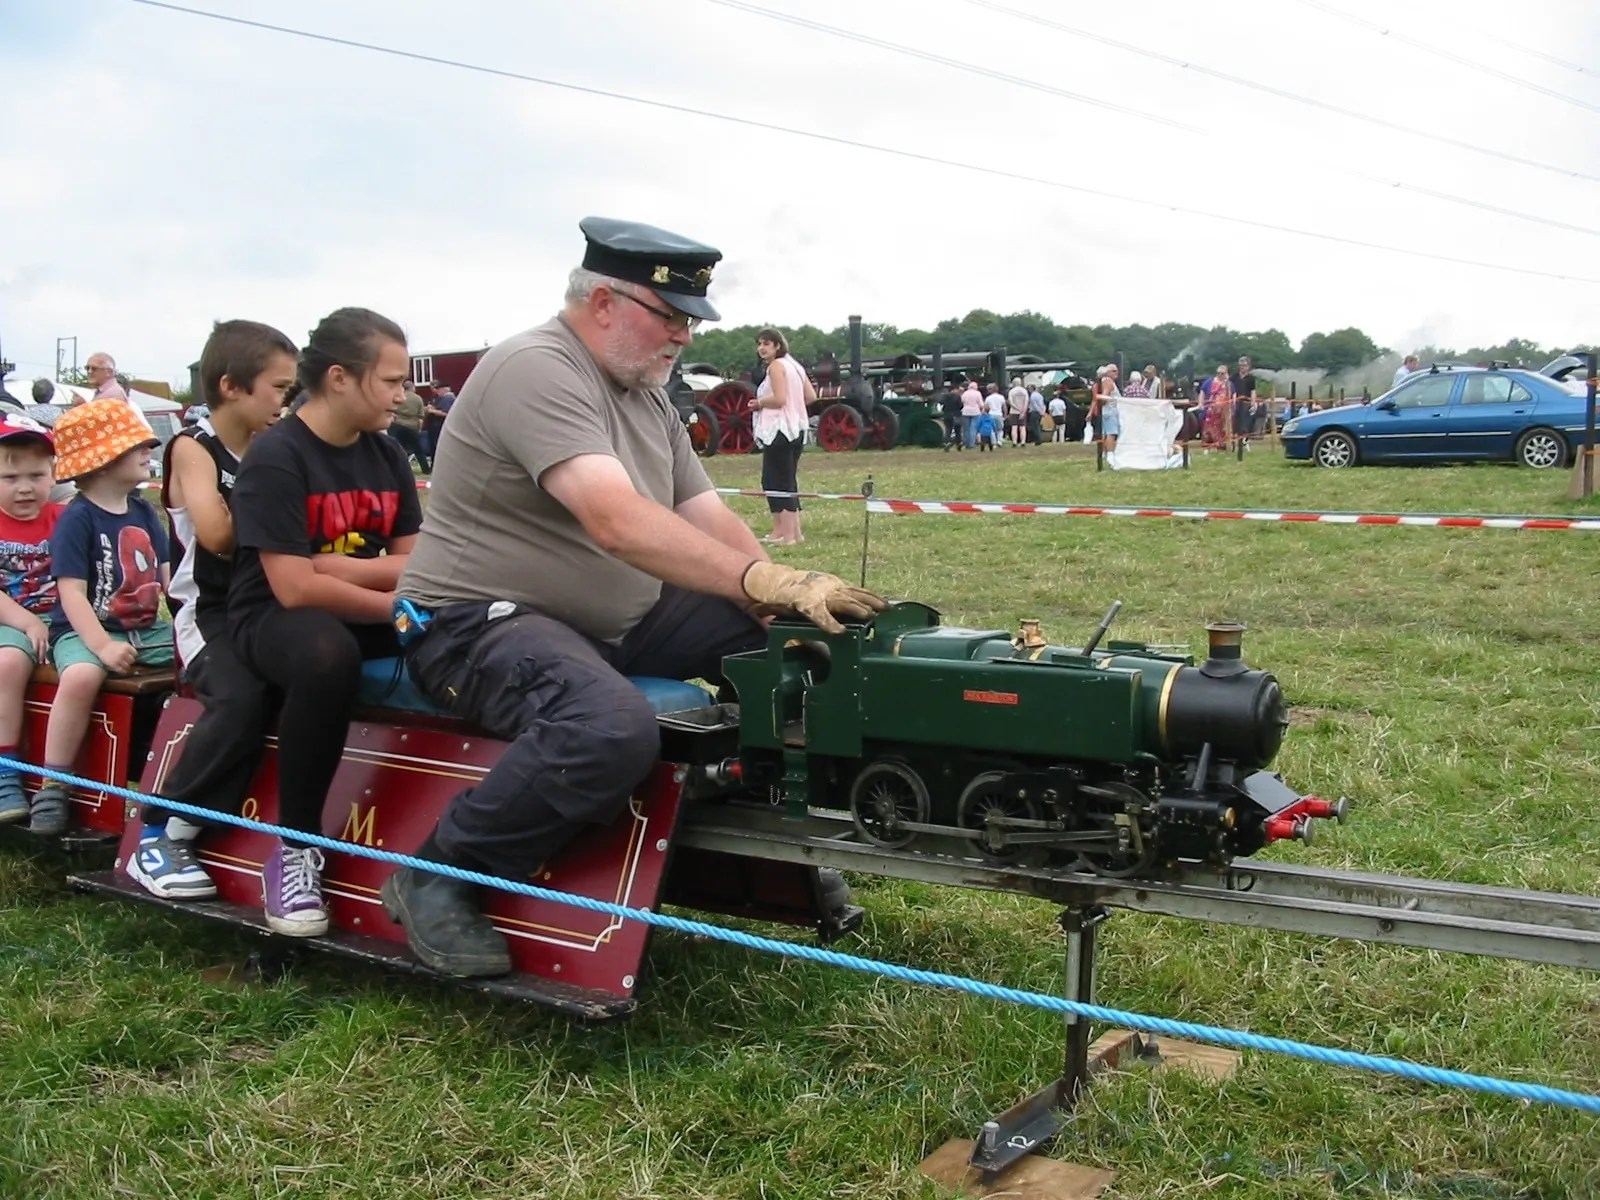 model train at the Barton Under Needwood Steam Rally